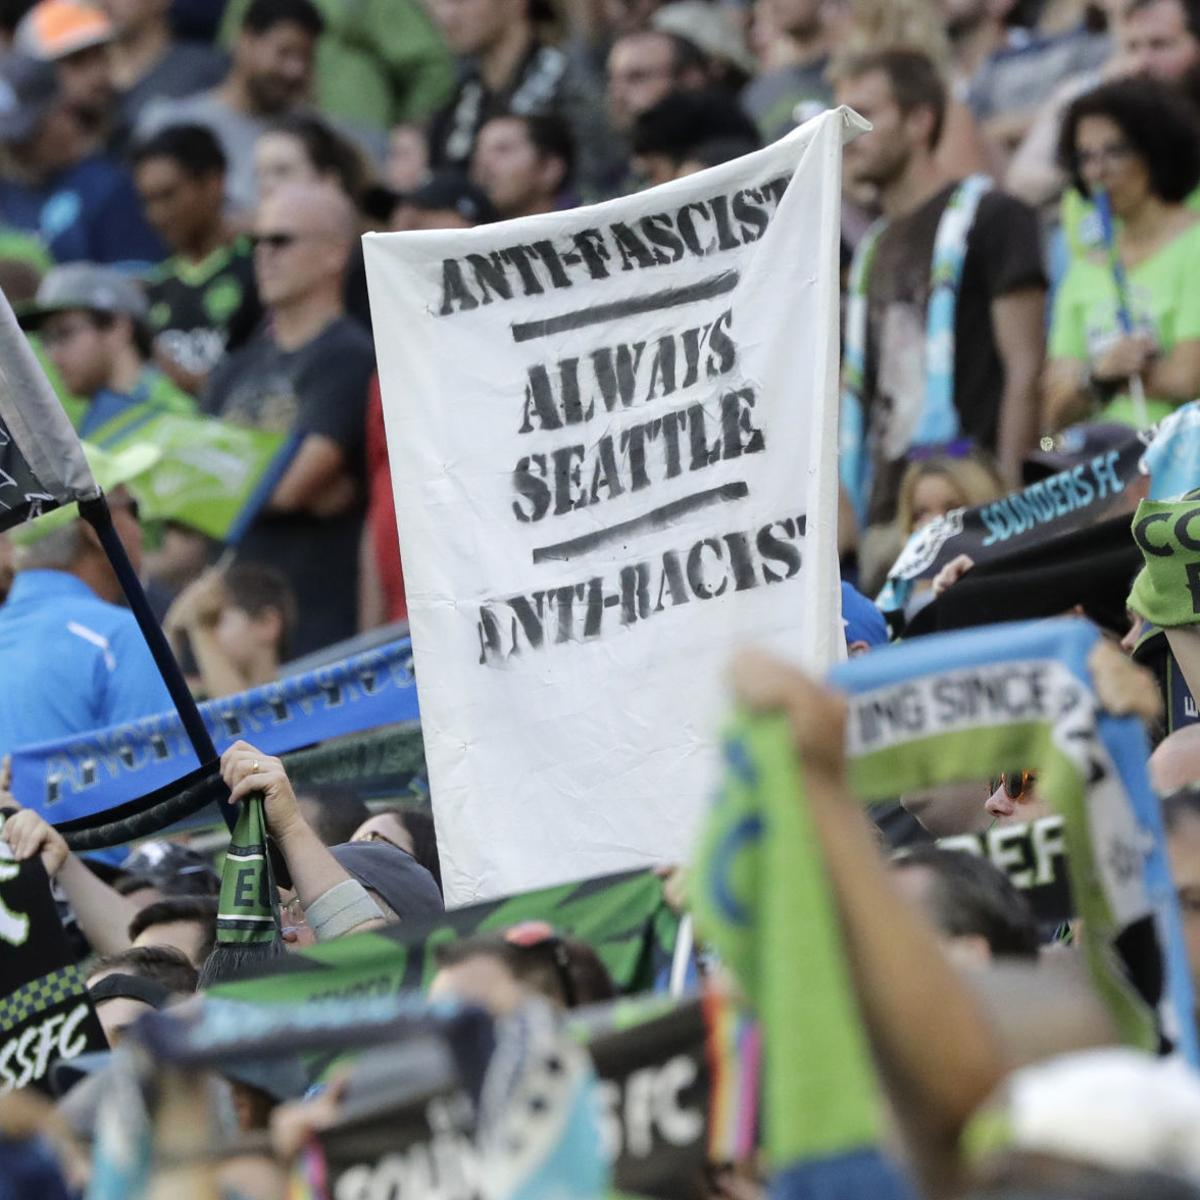 MLS teams navigate new 'no political display' policy | Sports